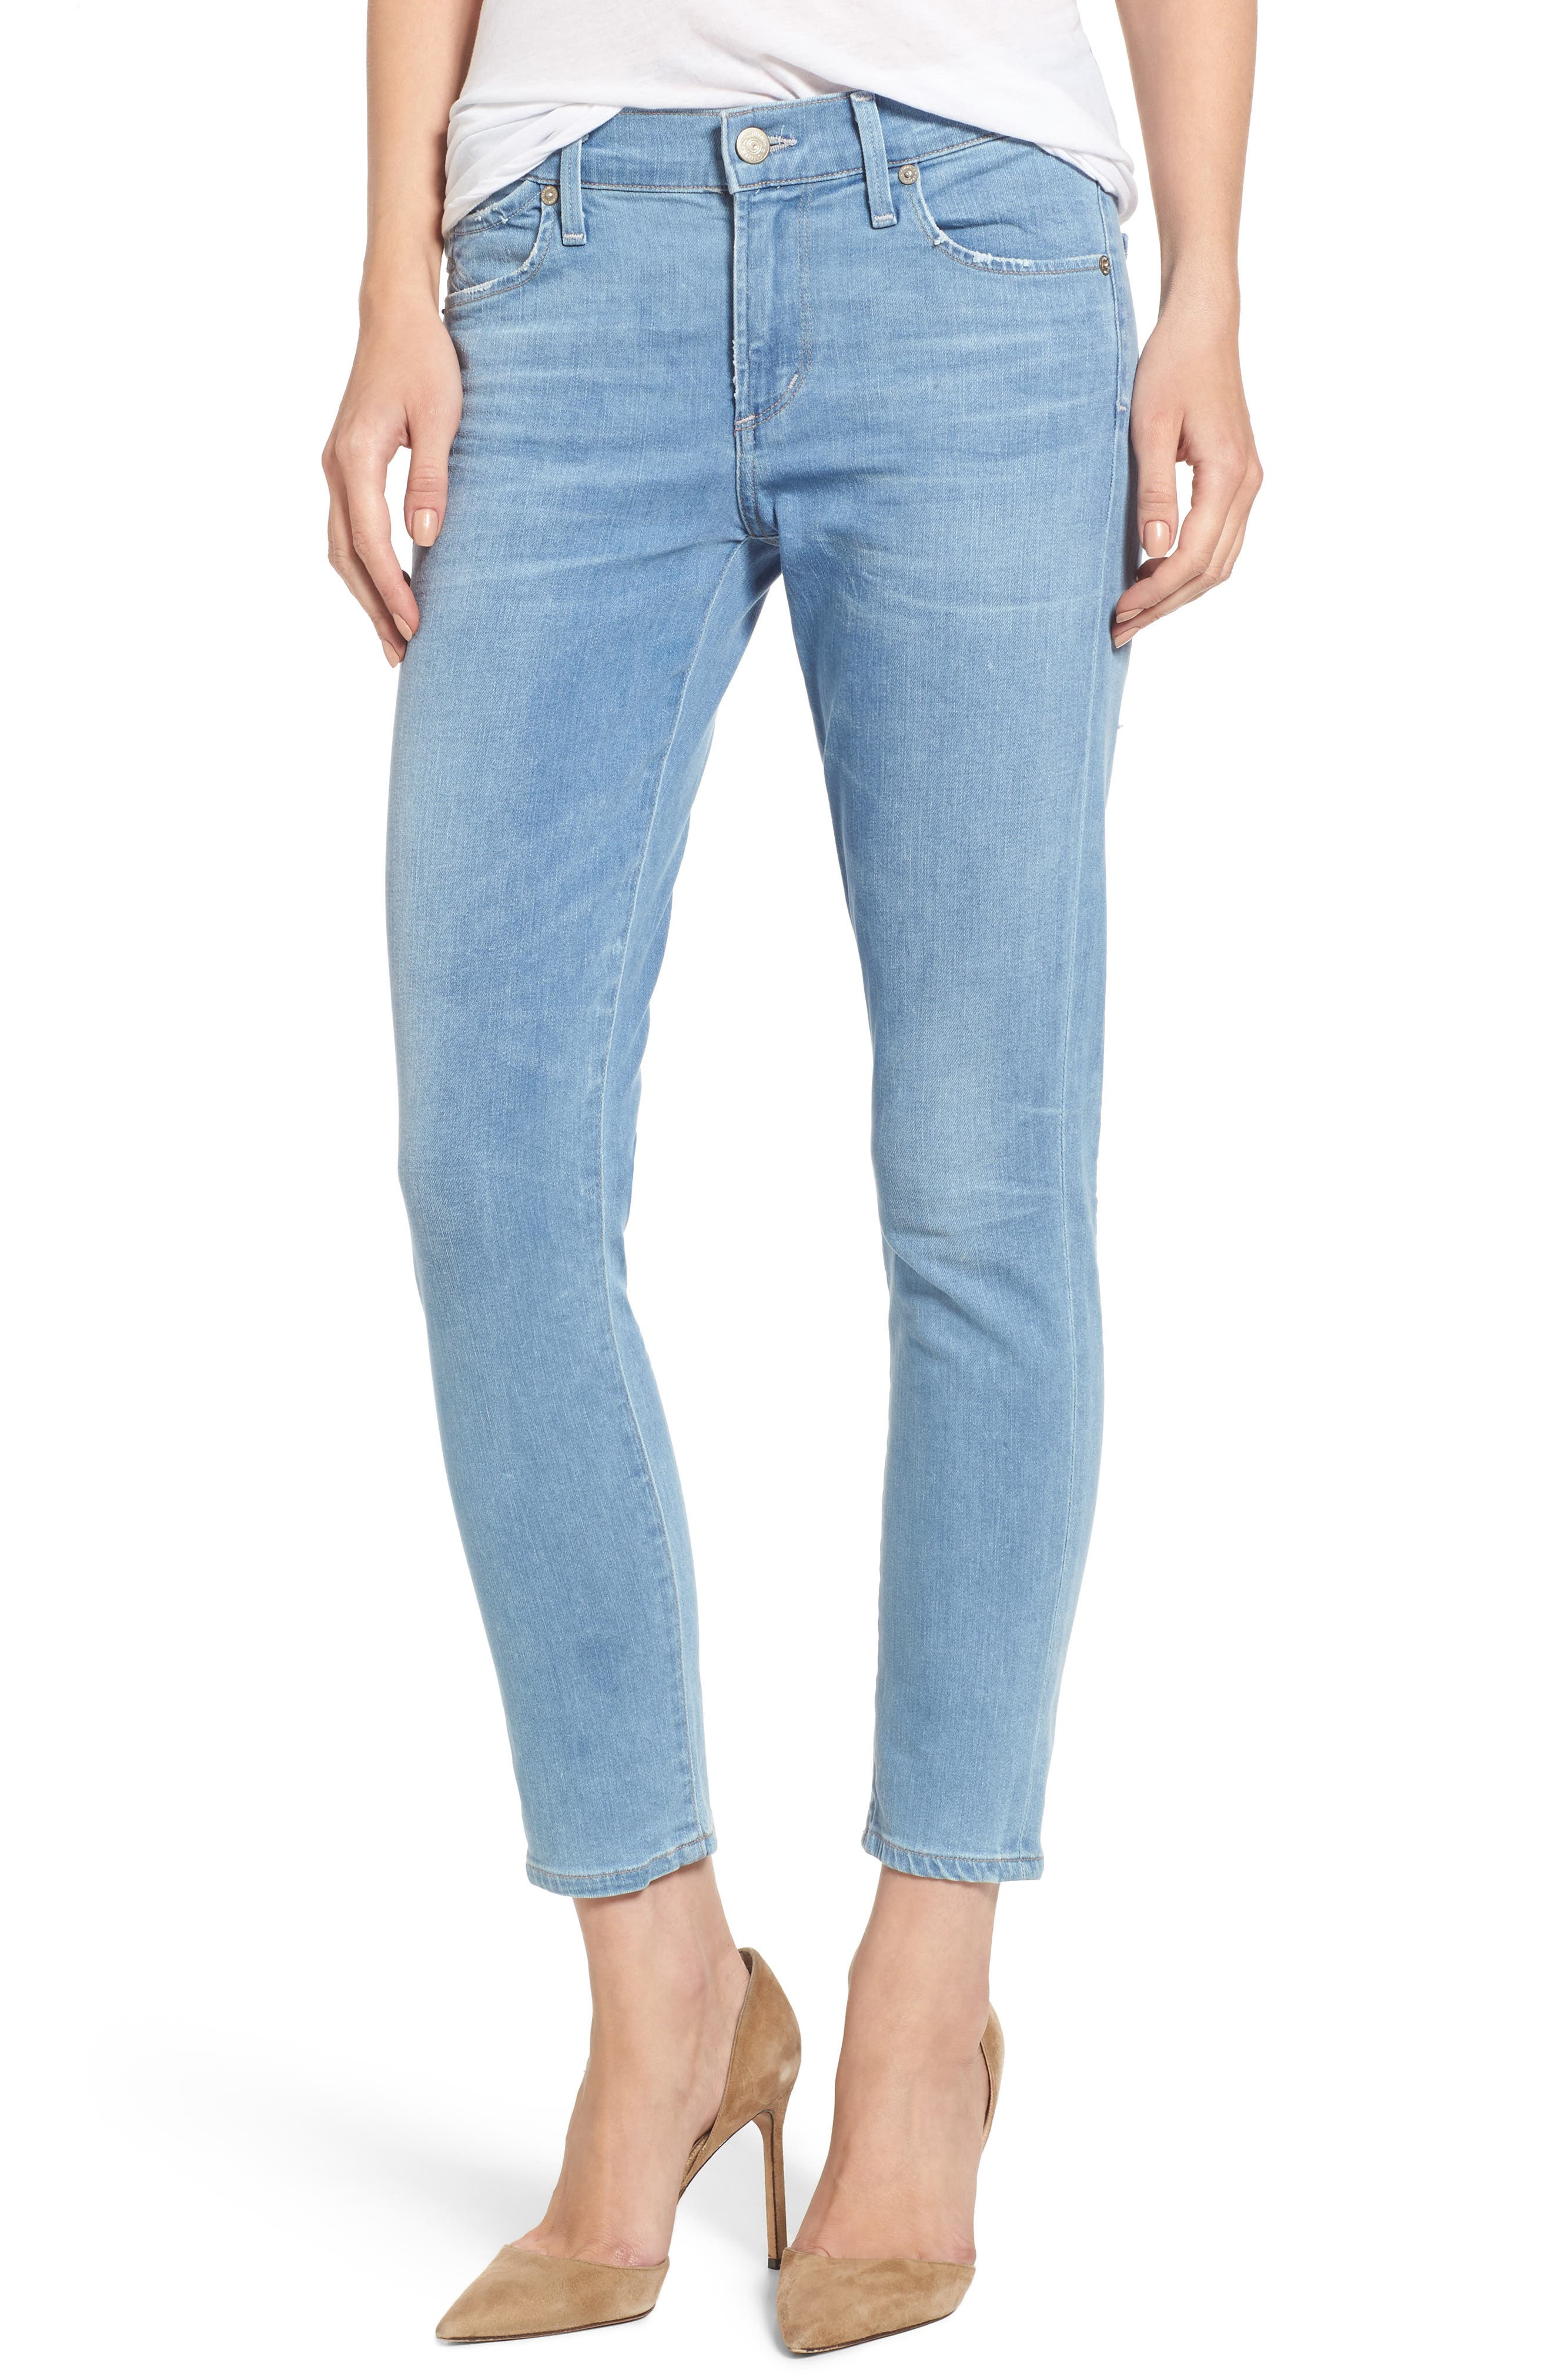 Avedon Ultra Skinny Jeans,                         Main,                         color, 455